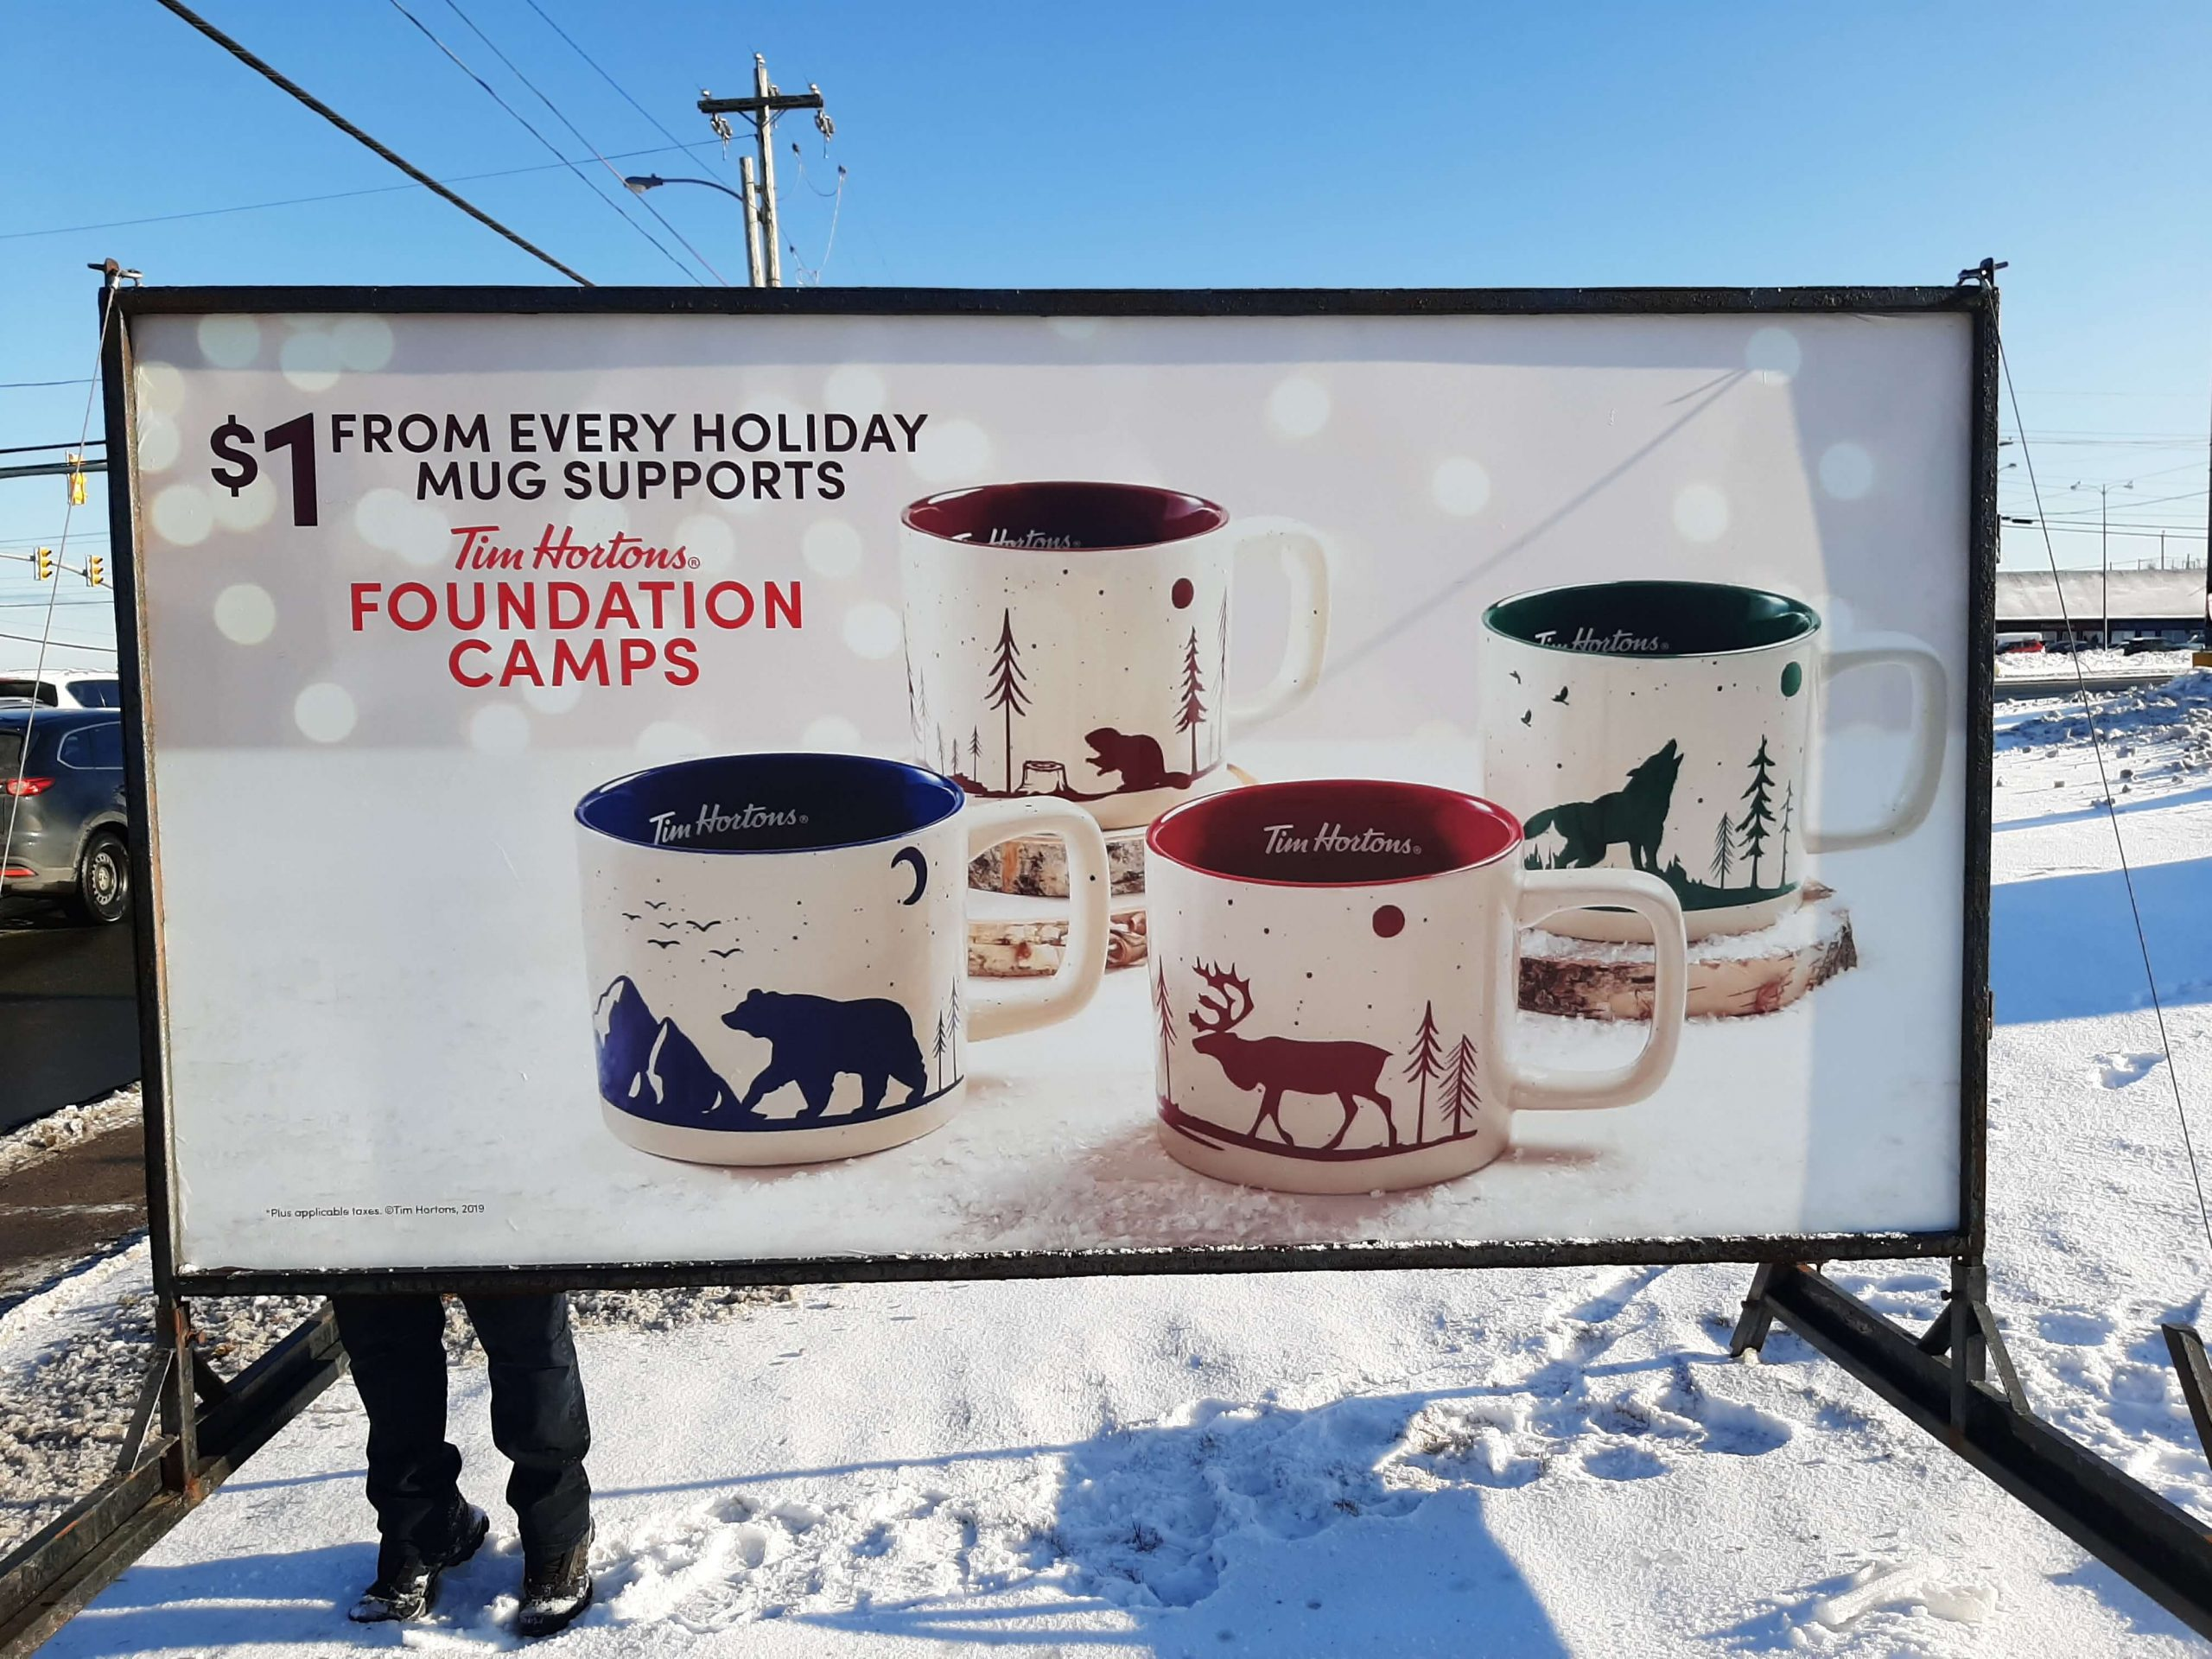 Tim Hortons foundation camps sign with mugs